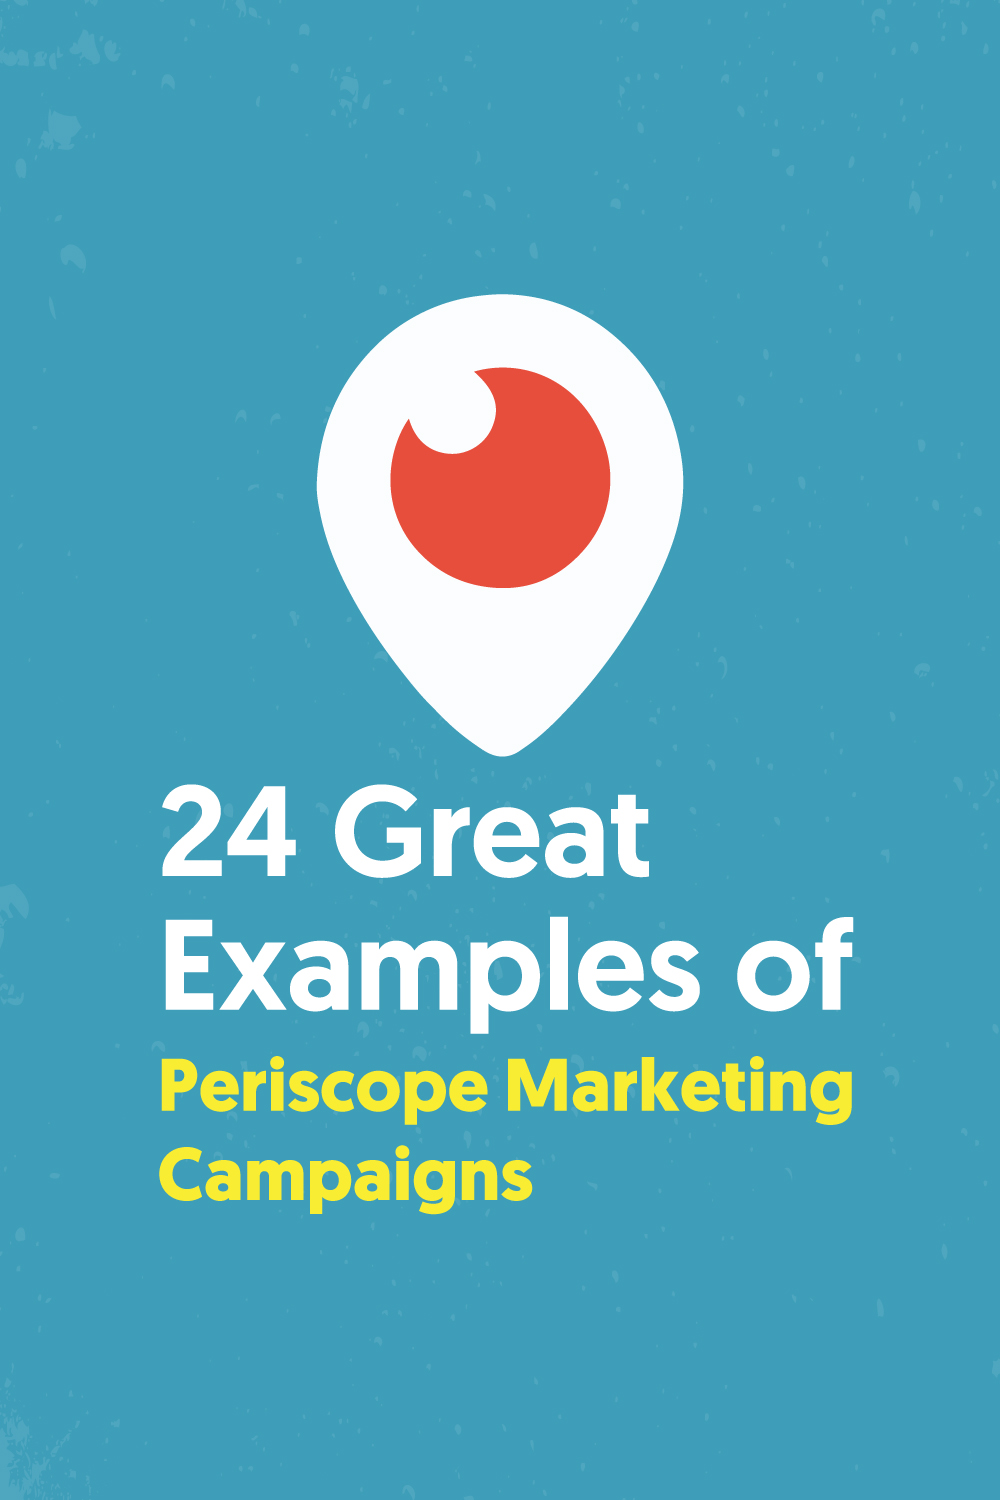 periscope marketing campaign